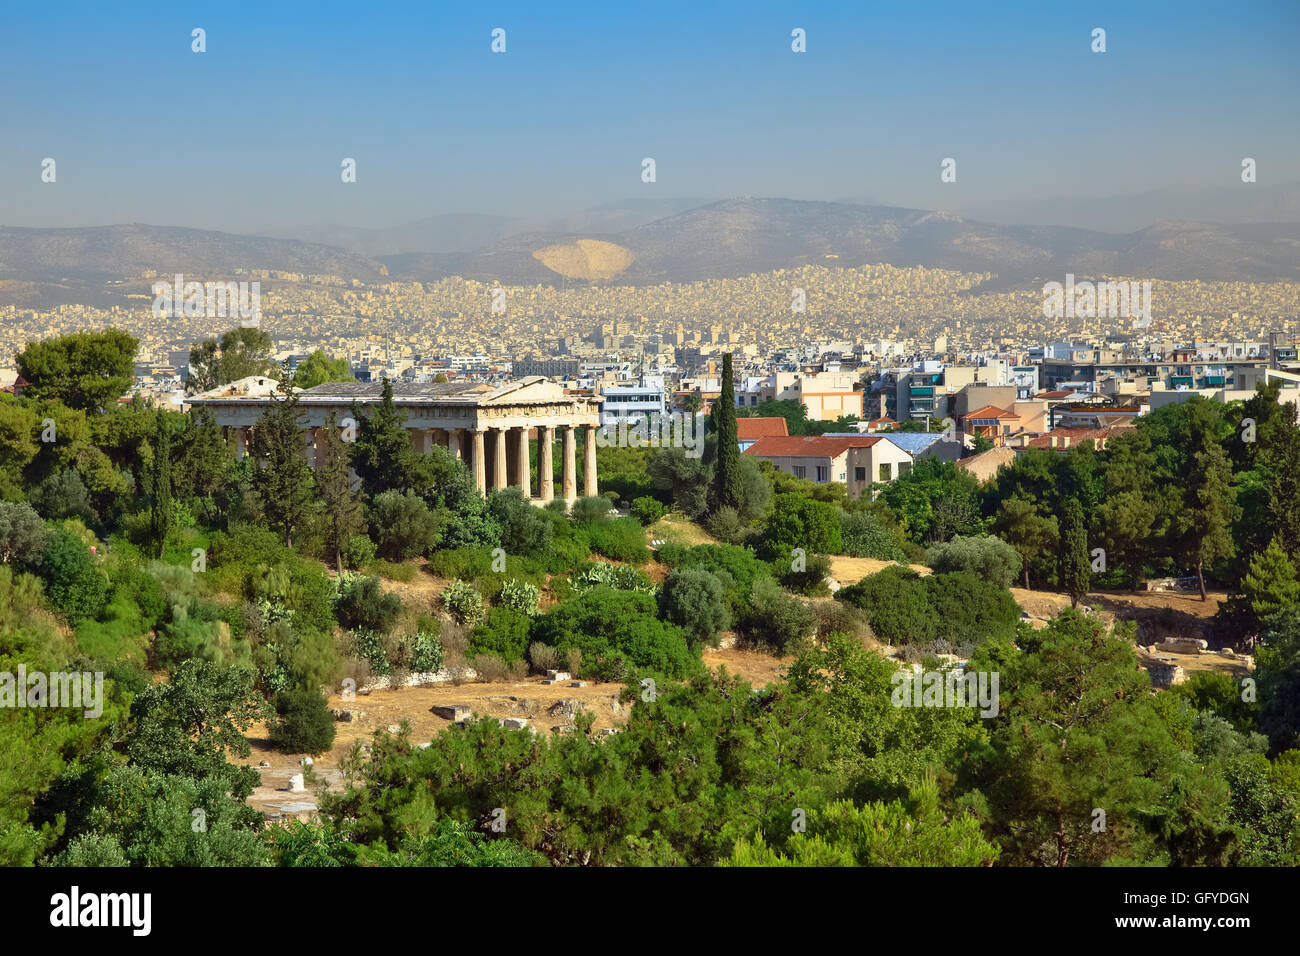 Athens from Acropolis - Stock Image